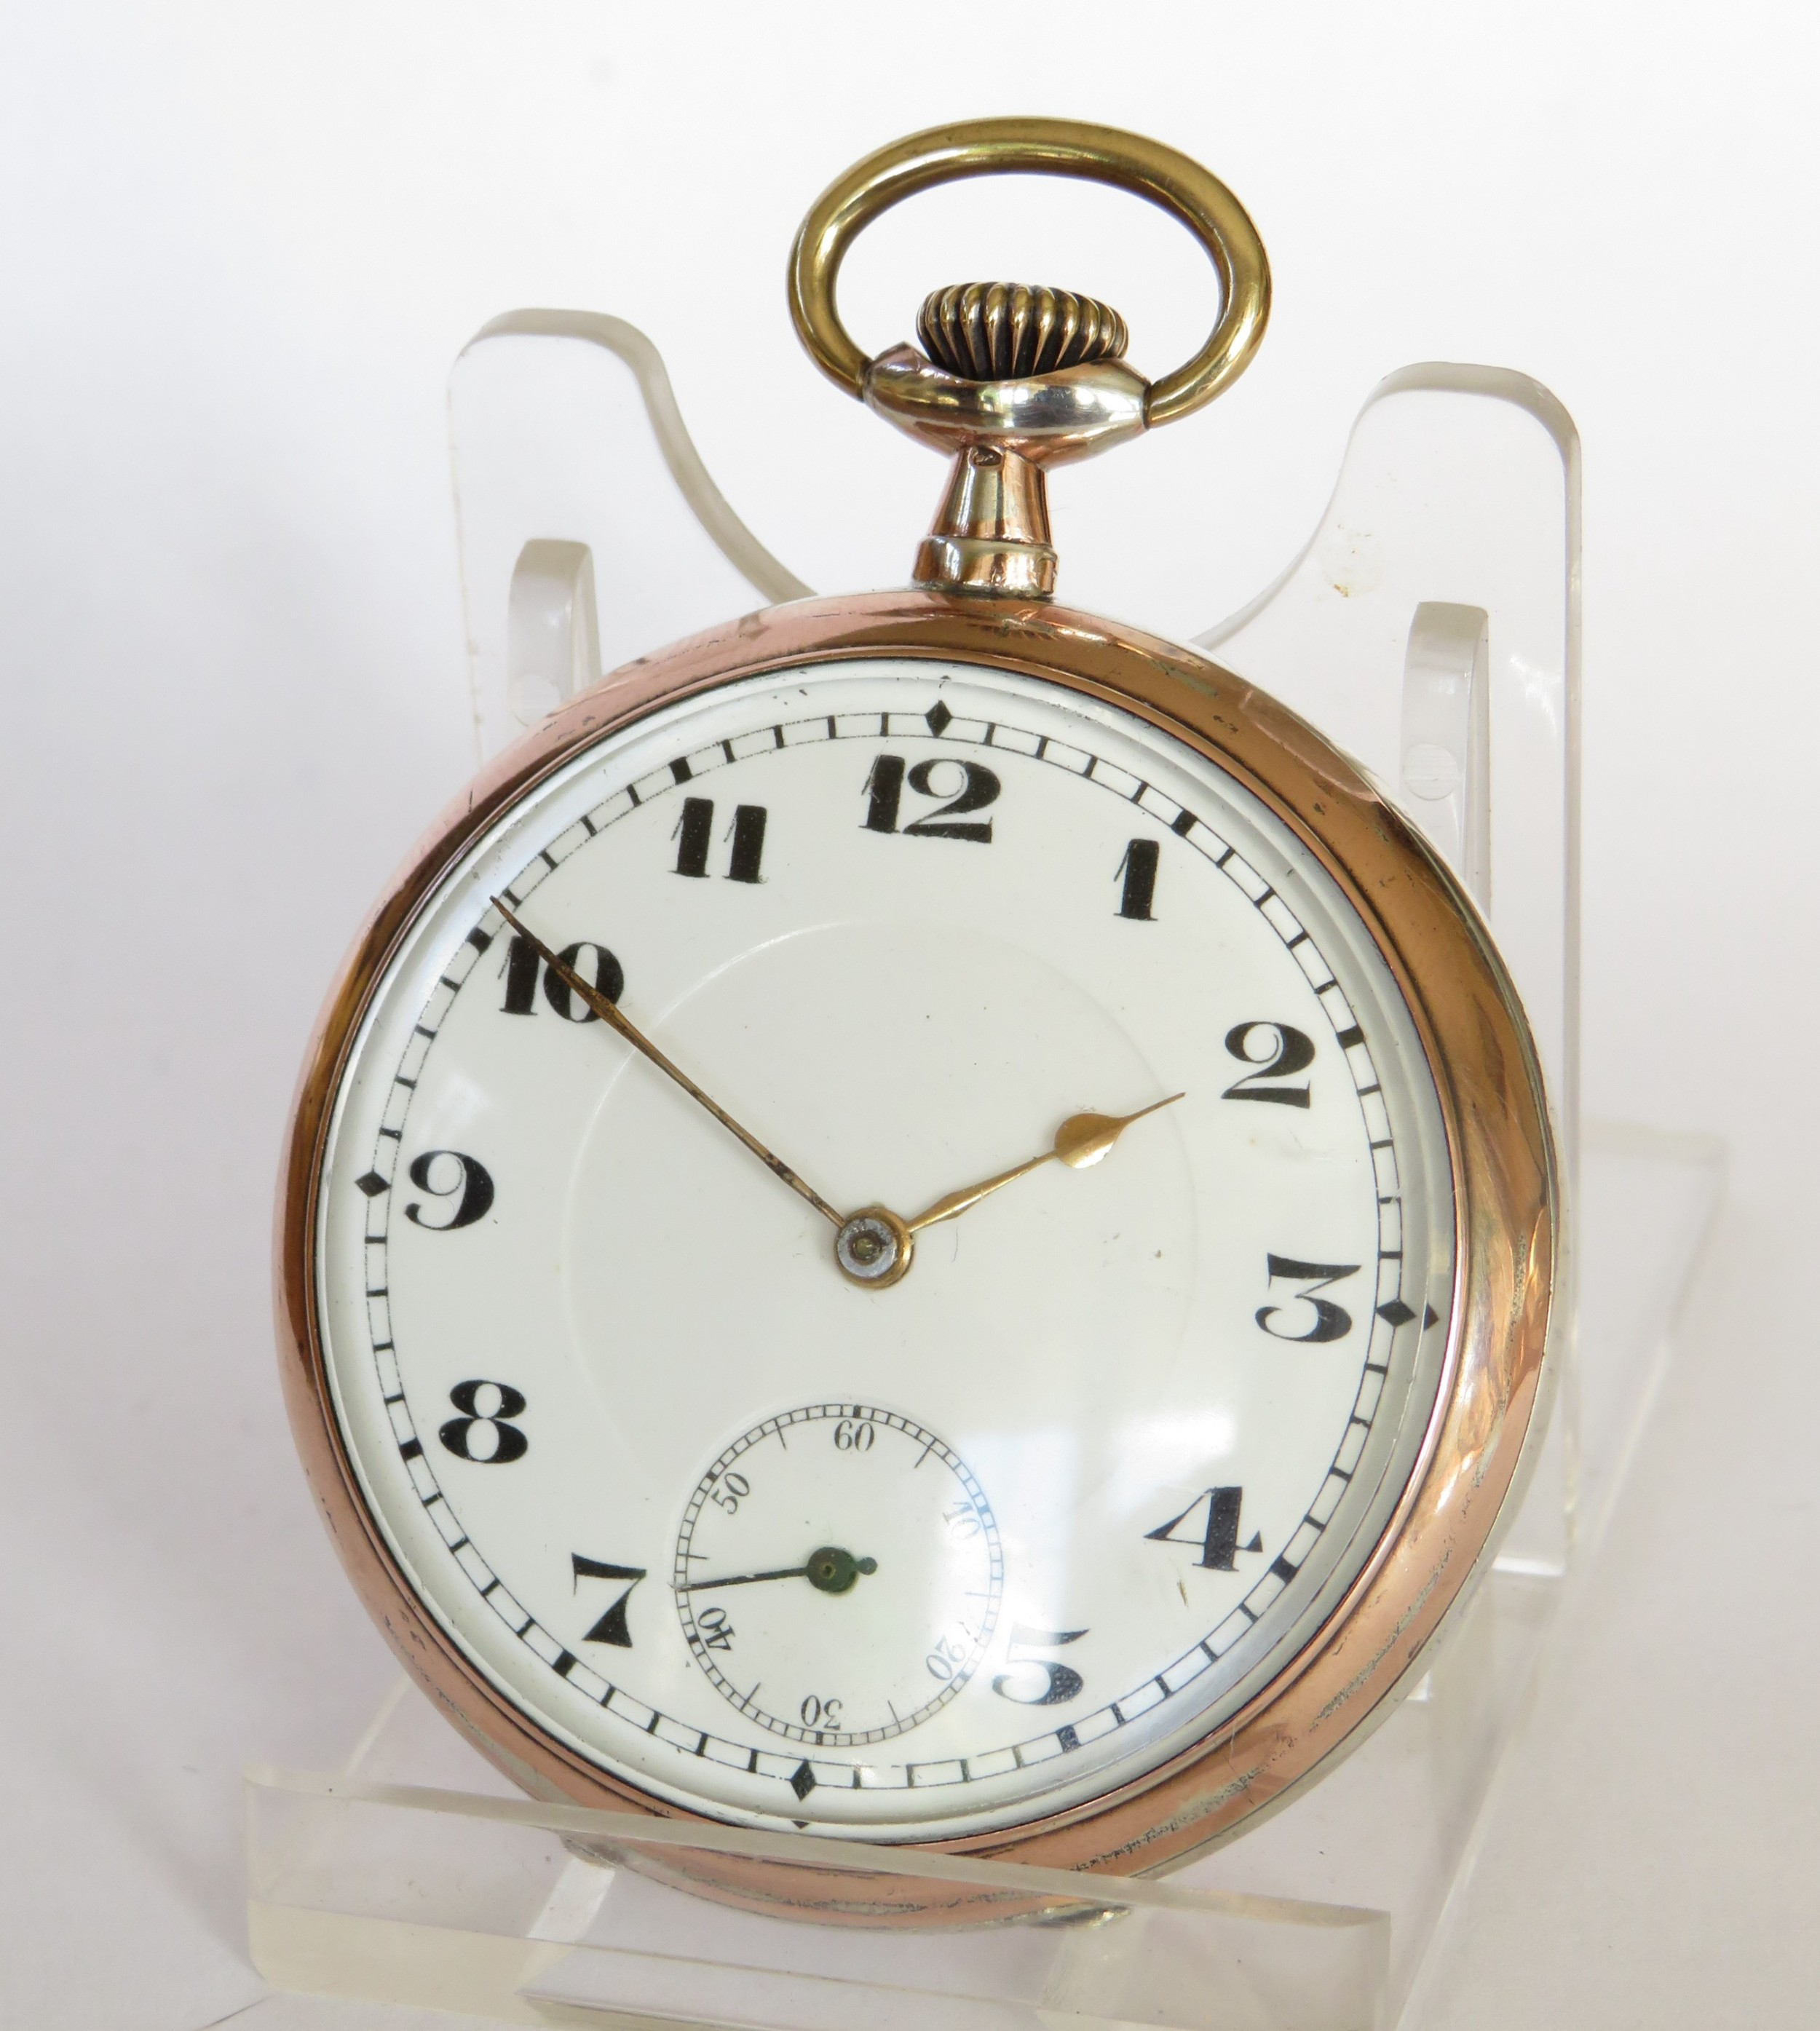 1920s silver pocket watch